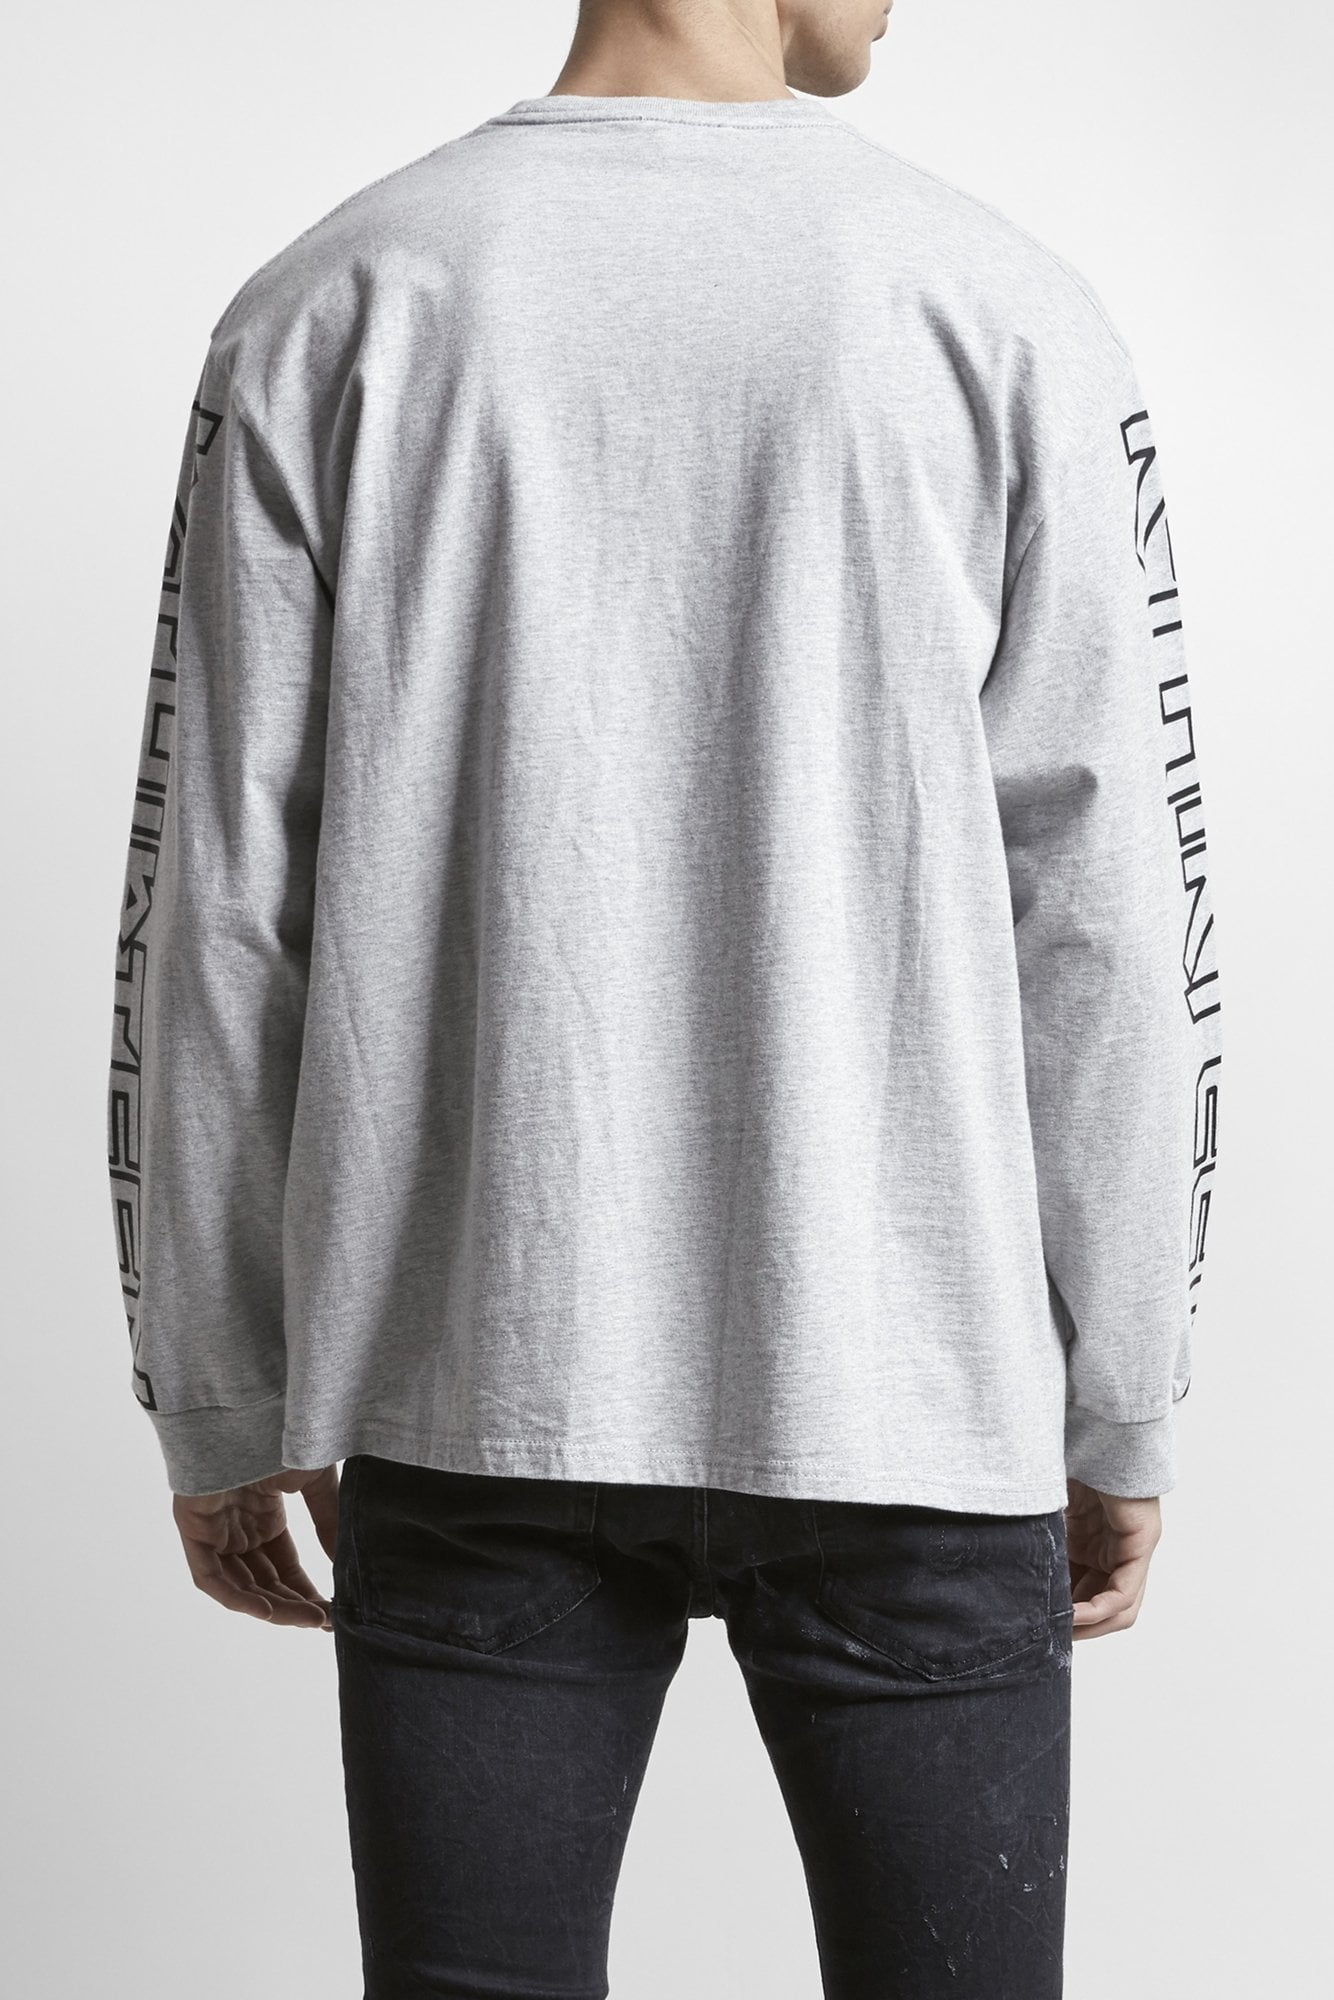 Rthirteen Long Sleeve T - Heather Grey